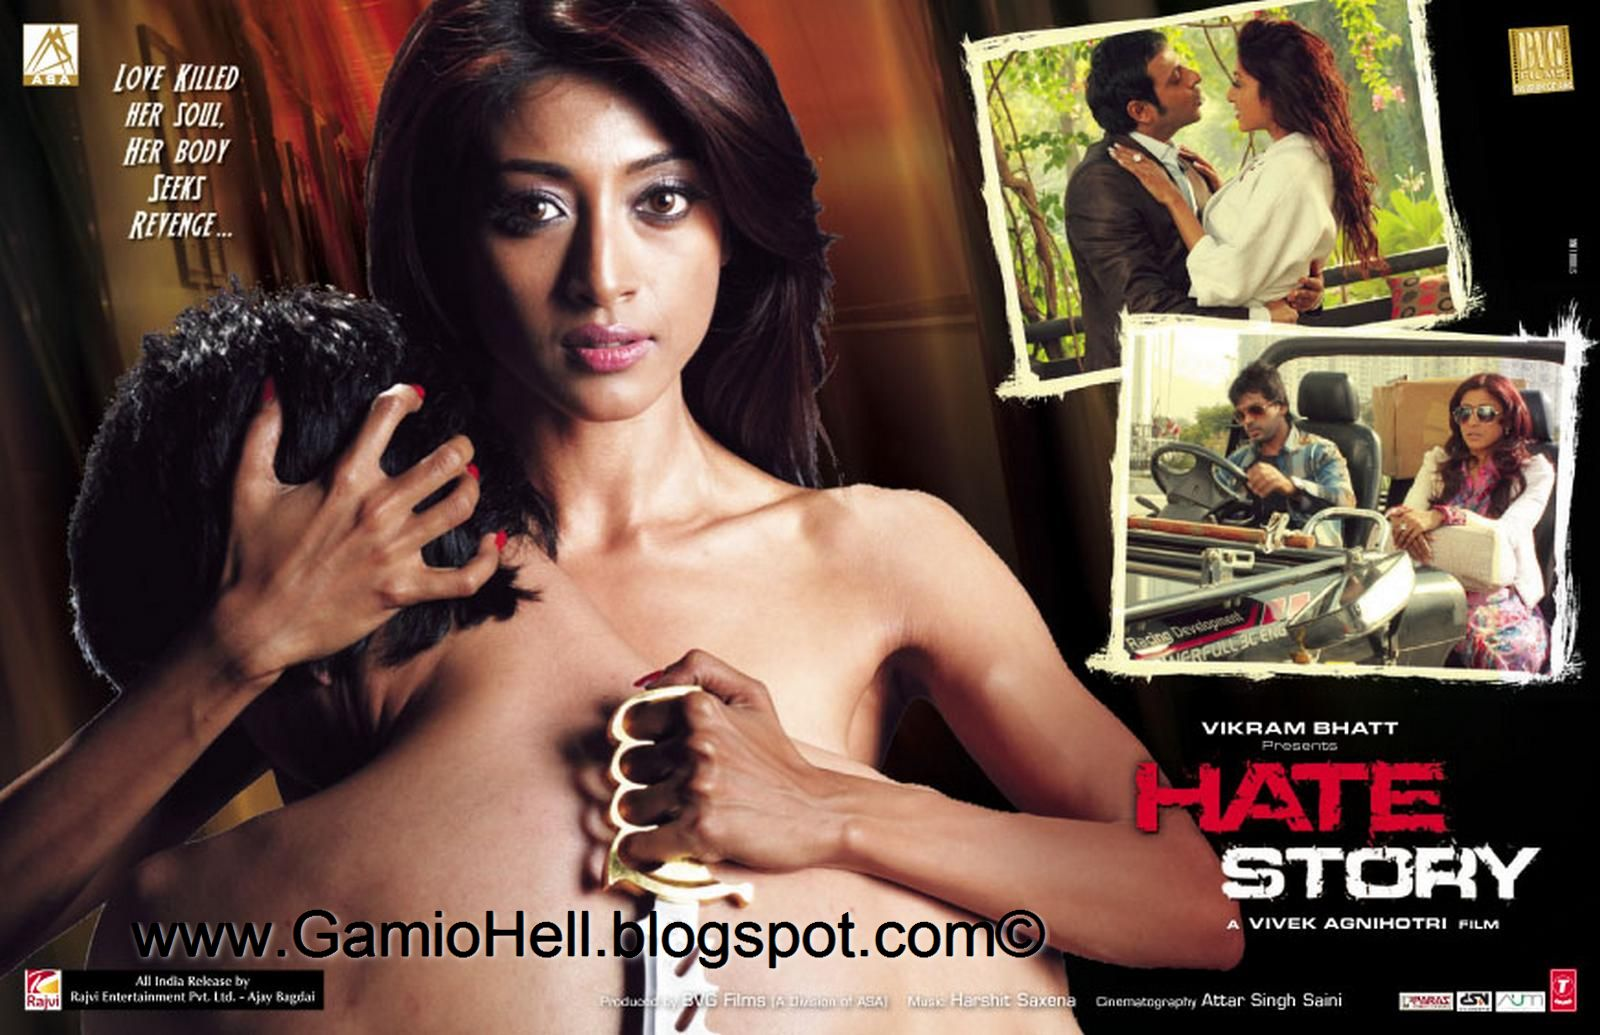 Hate Story 2012 Hindi Movie Dvdrip 400Mb Mediafire Links -1508